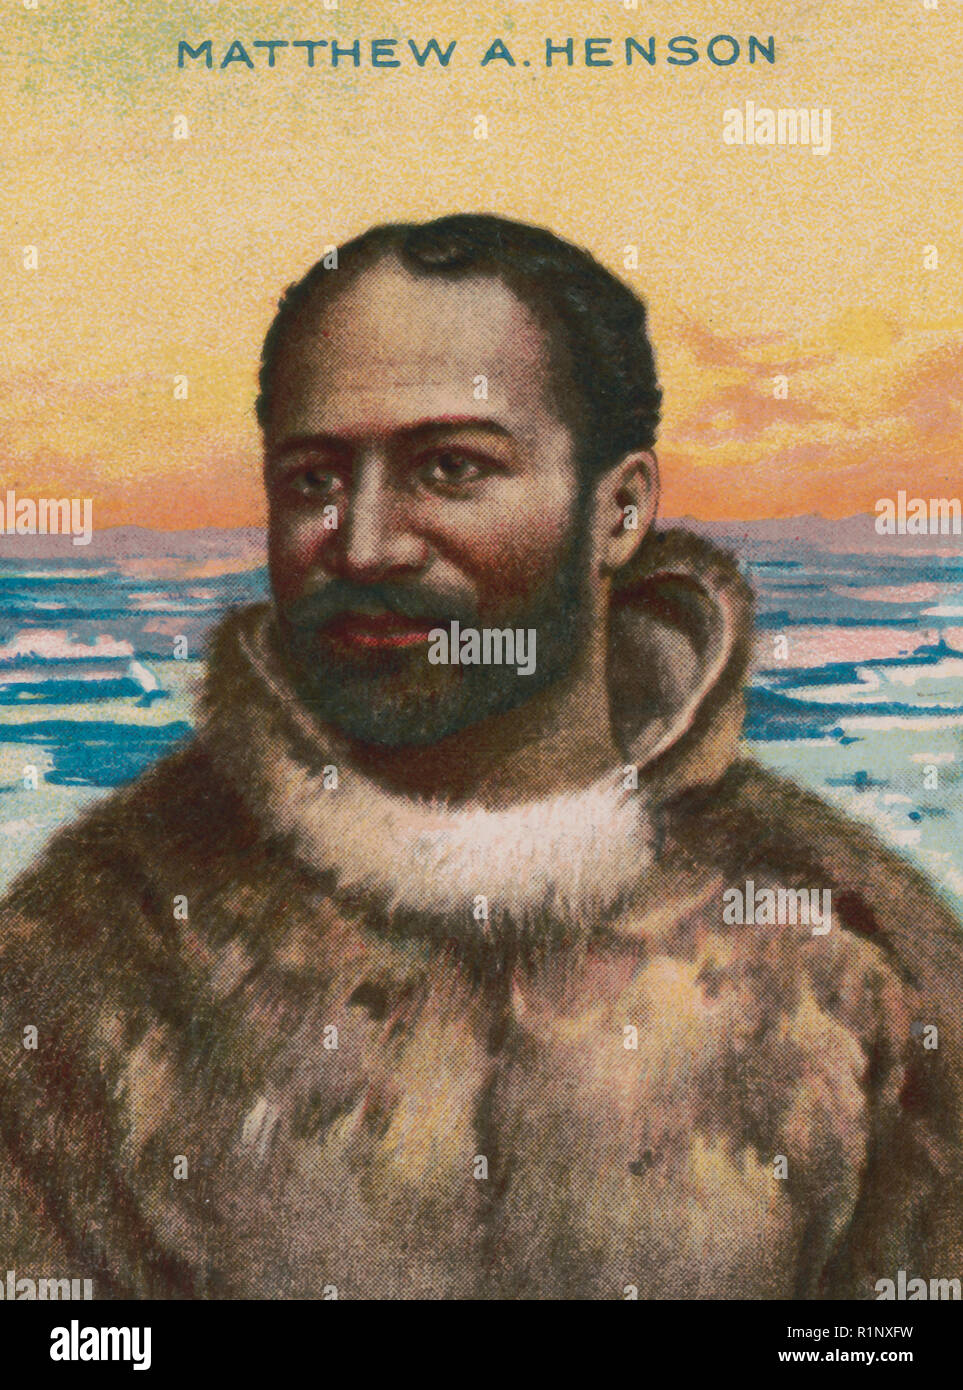 Matthew A. Henson - Cigarette card for American Tobacco Company's Hassan Cork Tip cigarettes shows portrait of Matthew Henson in parka in front of frozen landscape. 1910 - Stock Image